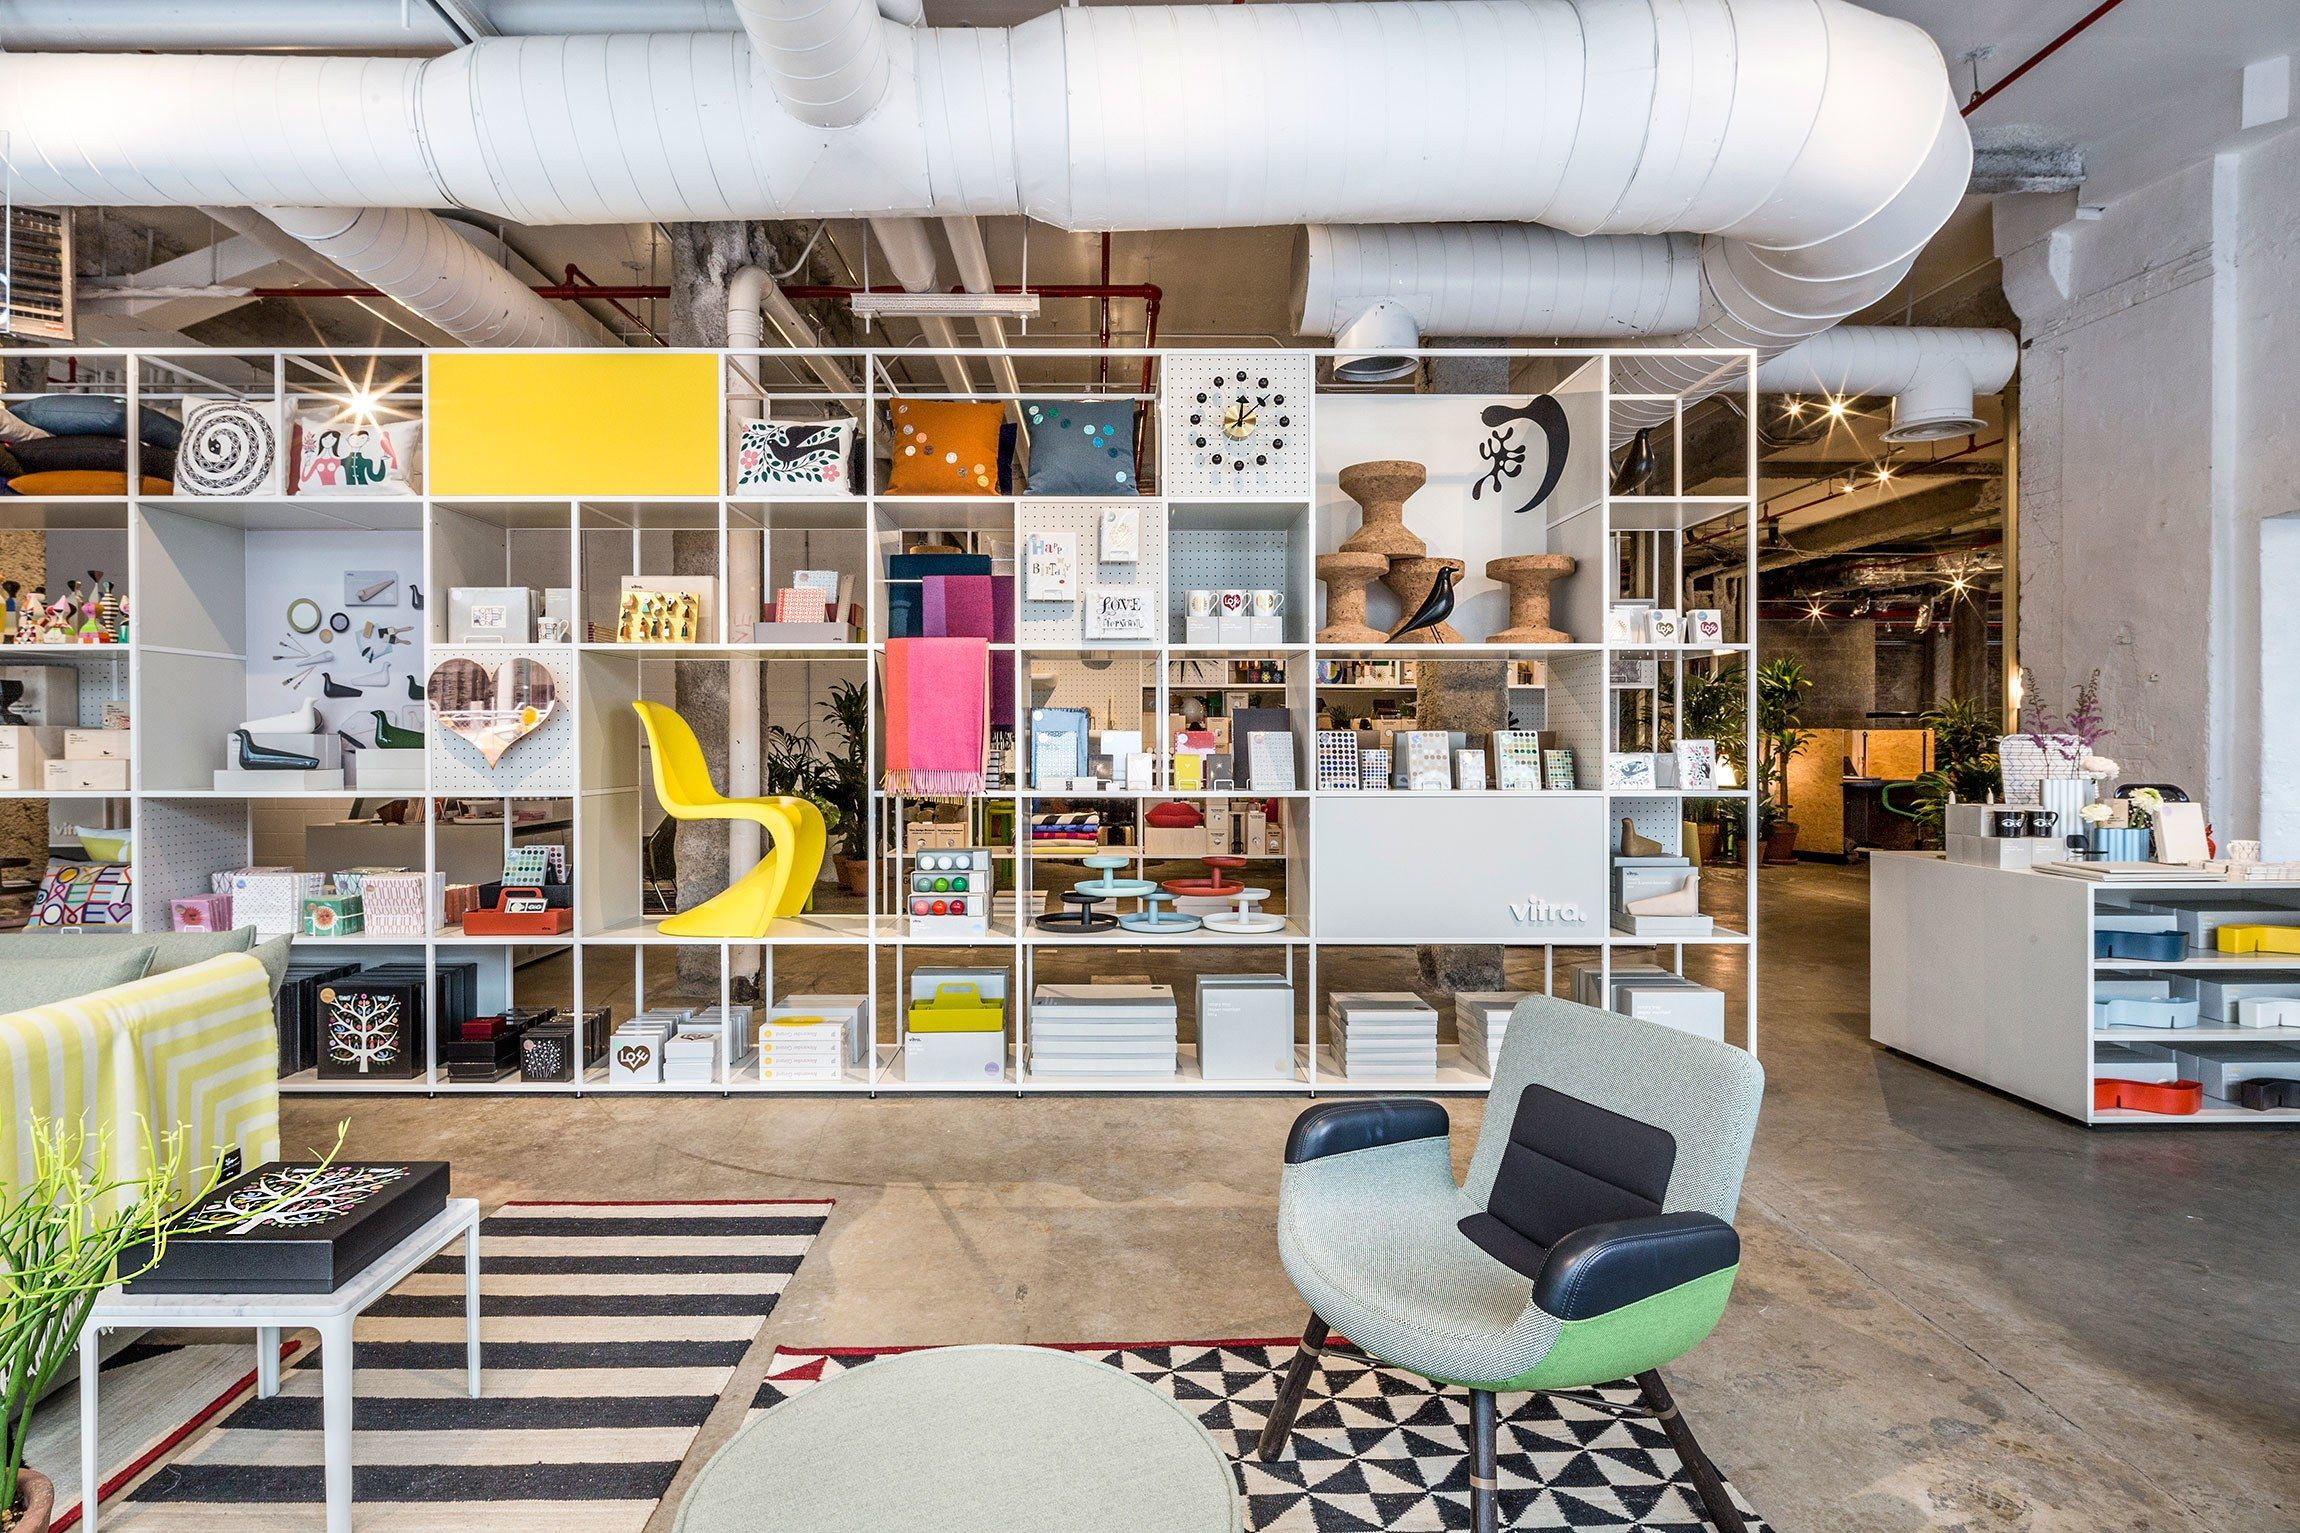 New Vitra Designs Make Their U S Debut In An Nyc Pop Up  # Muebles Sirena Animal Crossing